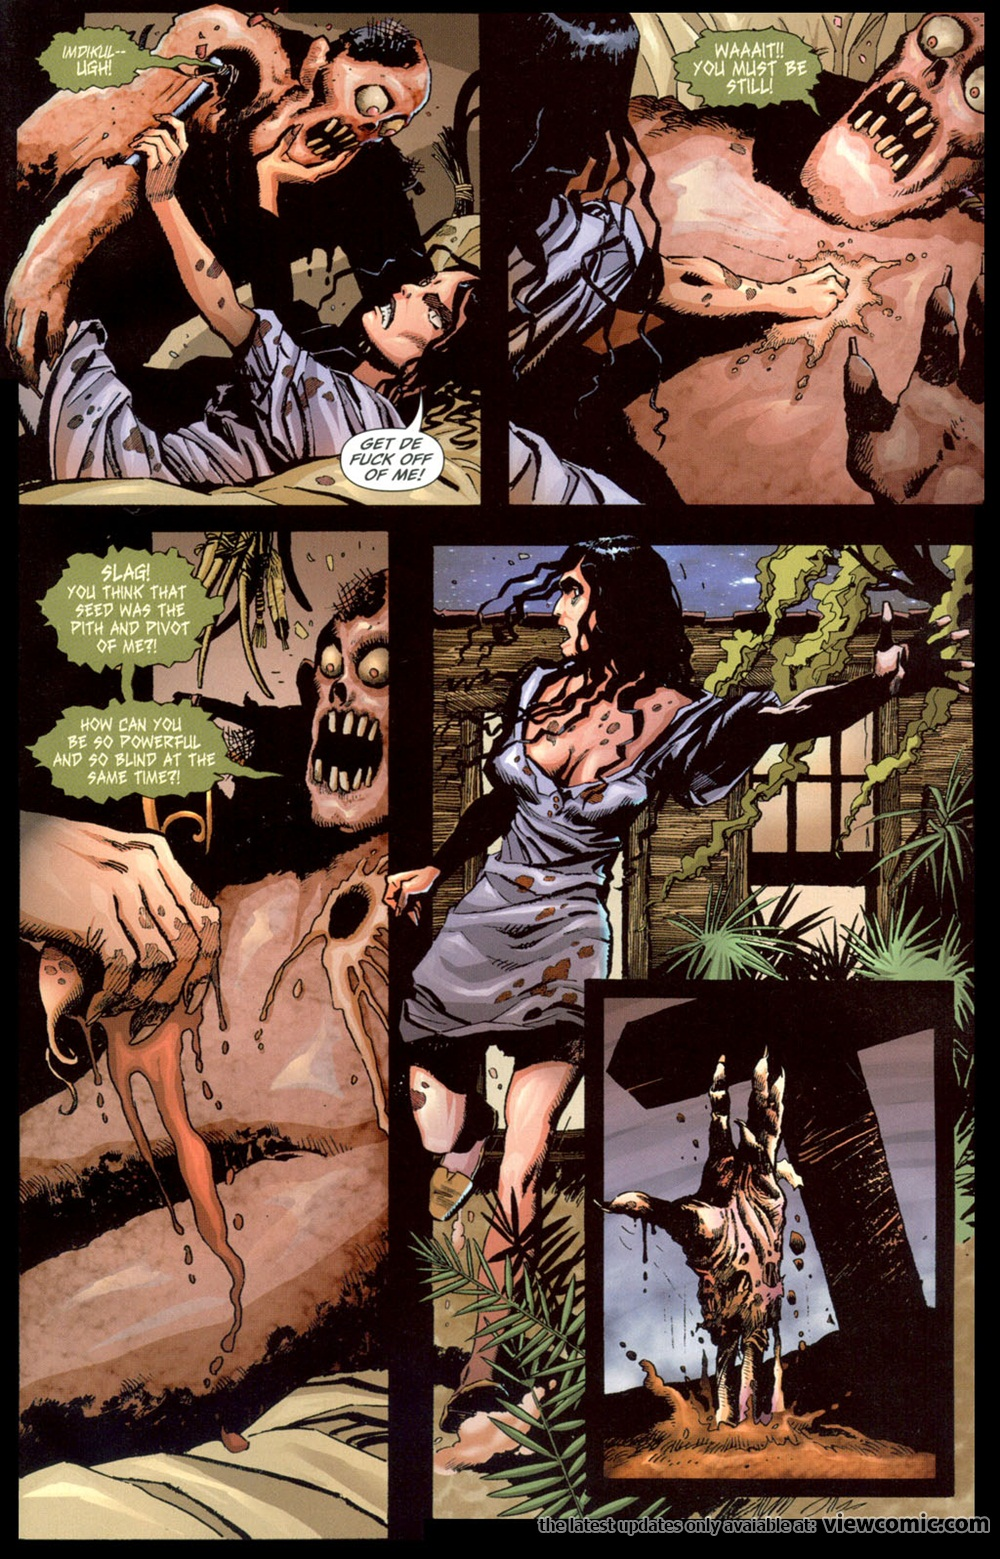 Swamp Thing v4 009 | Vietcomic.net reading comics online for free